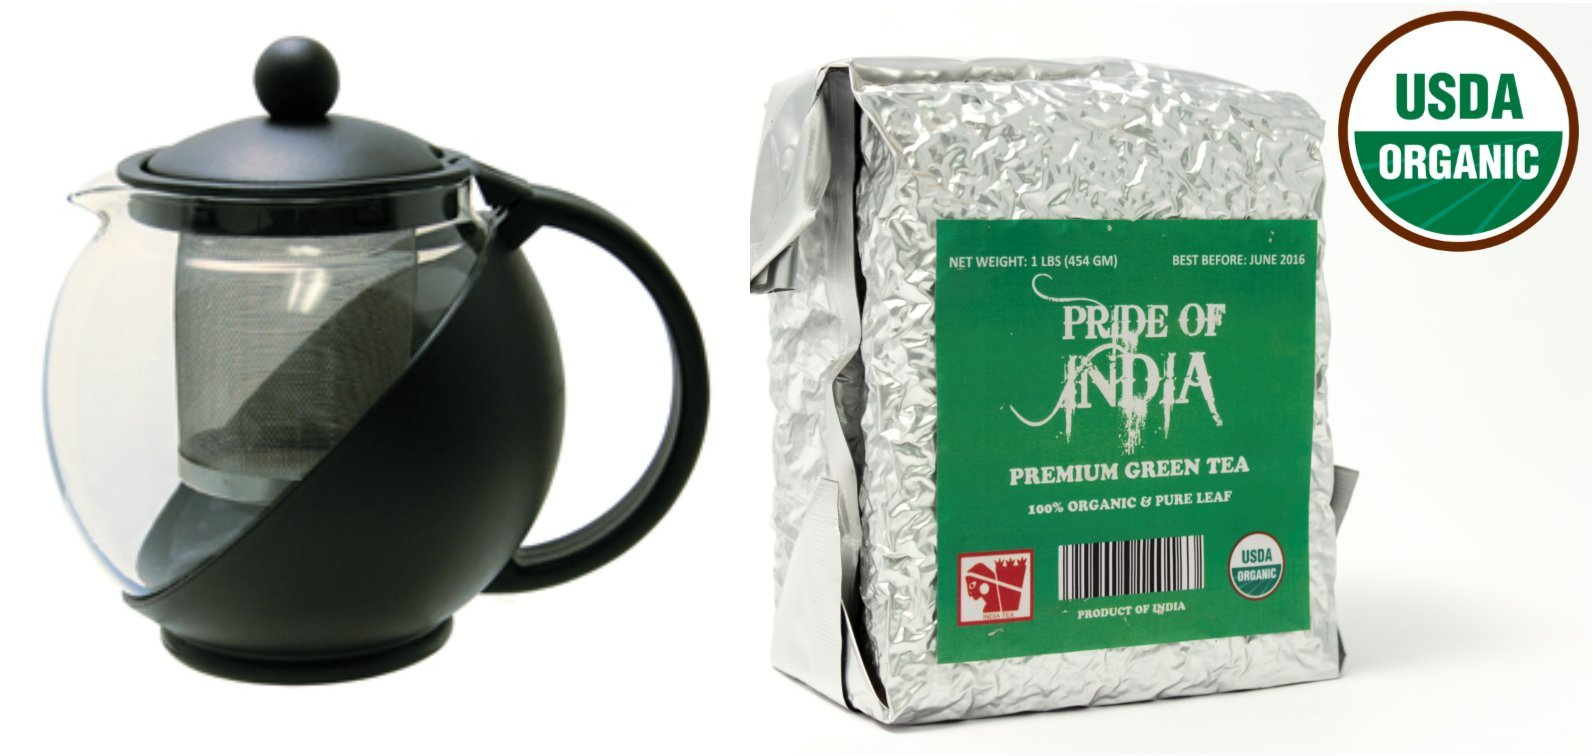 Pride Of India - Organic Indian Green Tea - Half Pound Full Leaf & Tempered 3-Cup Glass Tea Pot w/Removable Infuser - 25 Fluid Ounces Combo Pack LIMITED TIME SALE PRICE: $24.99